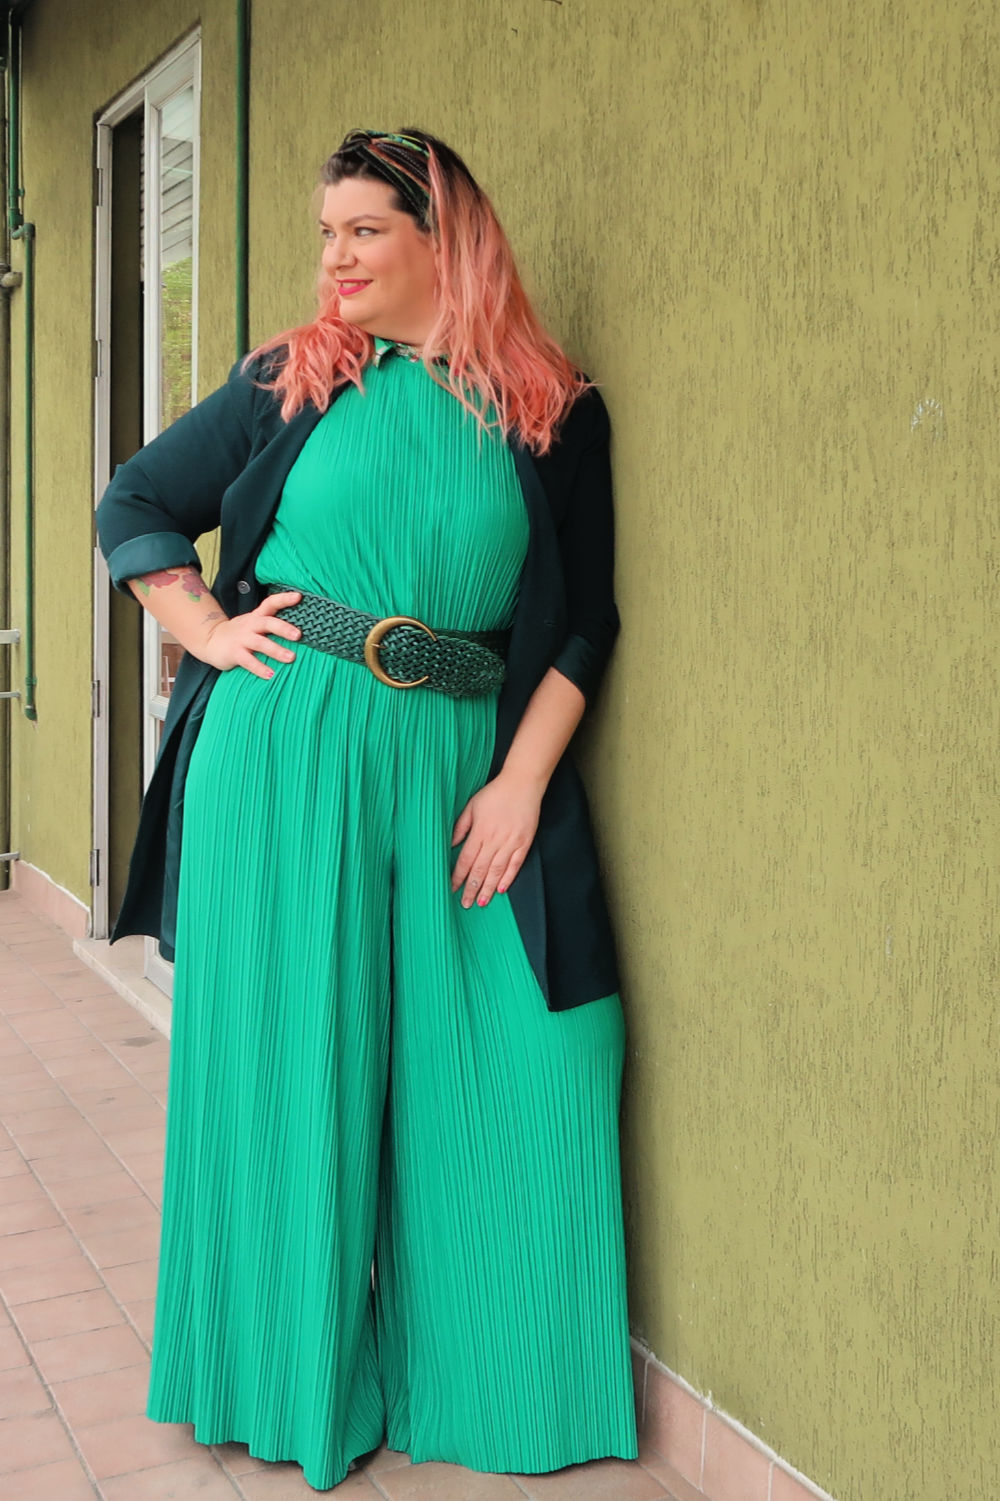 Verde, outfit plus size, curvycolorchallenge , come indossarlo (3)